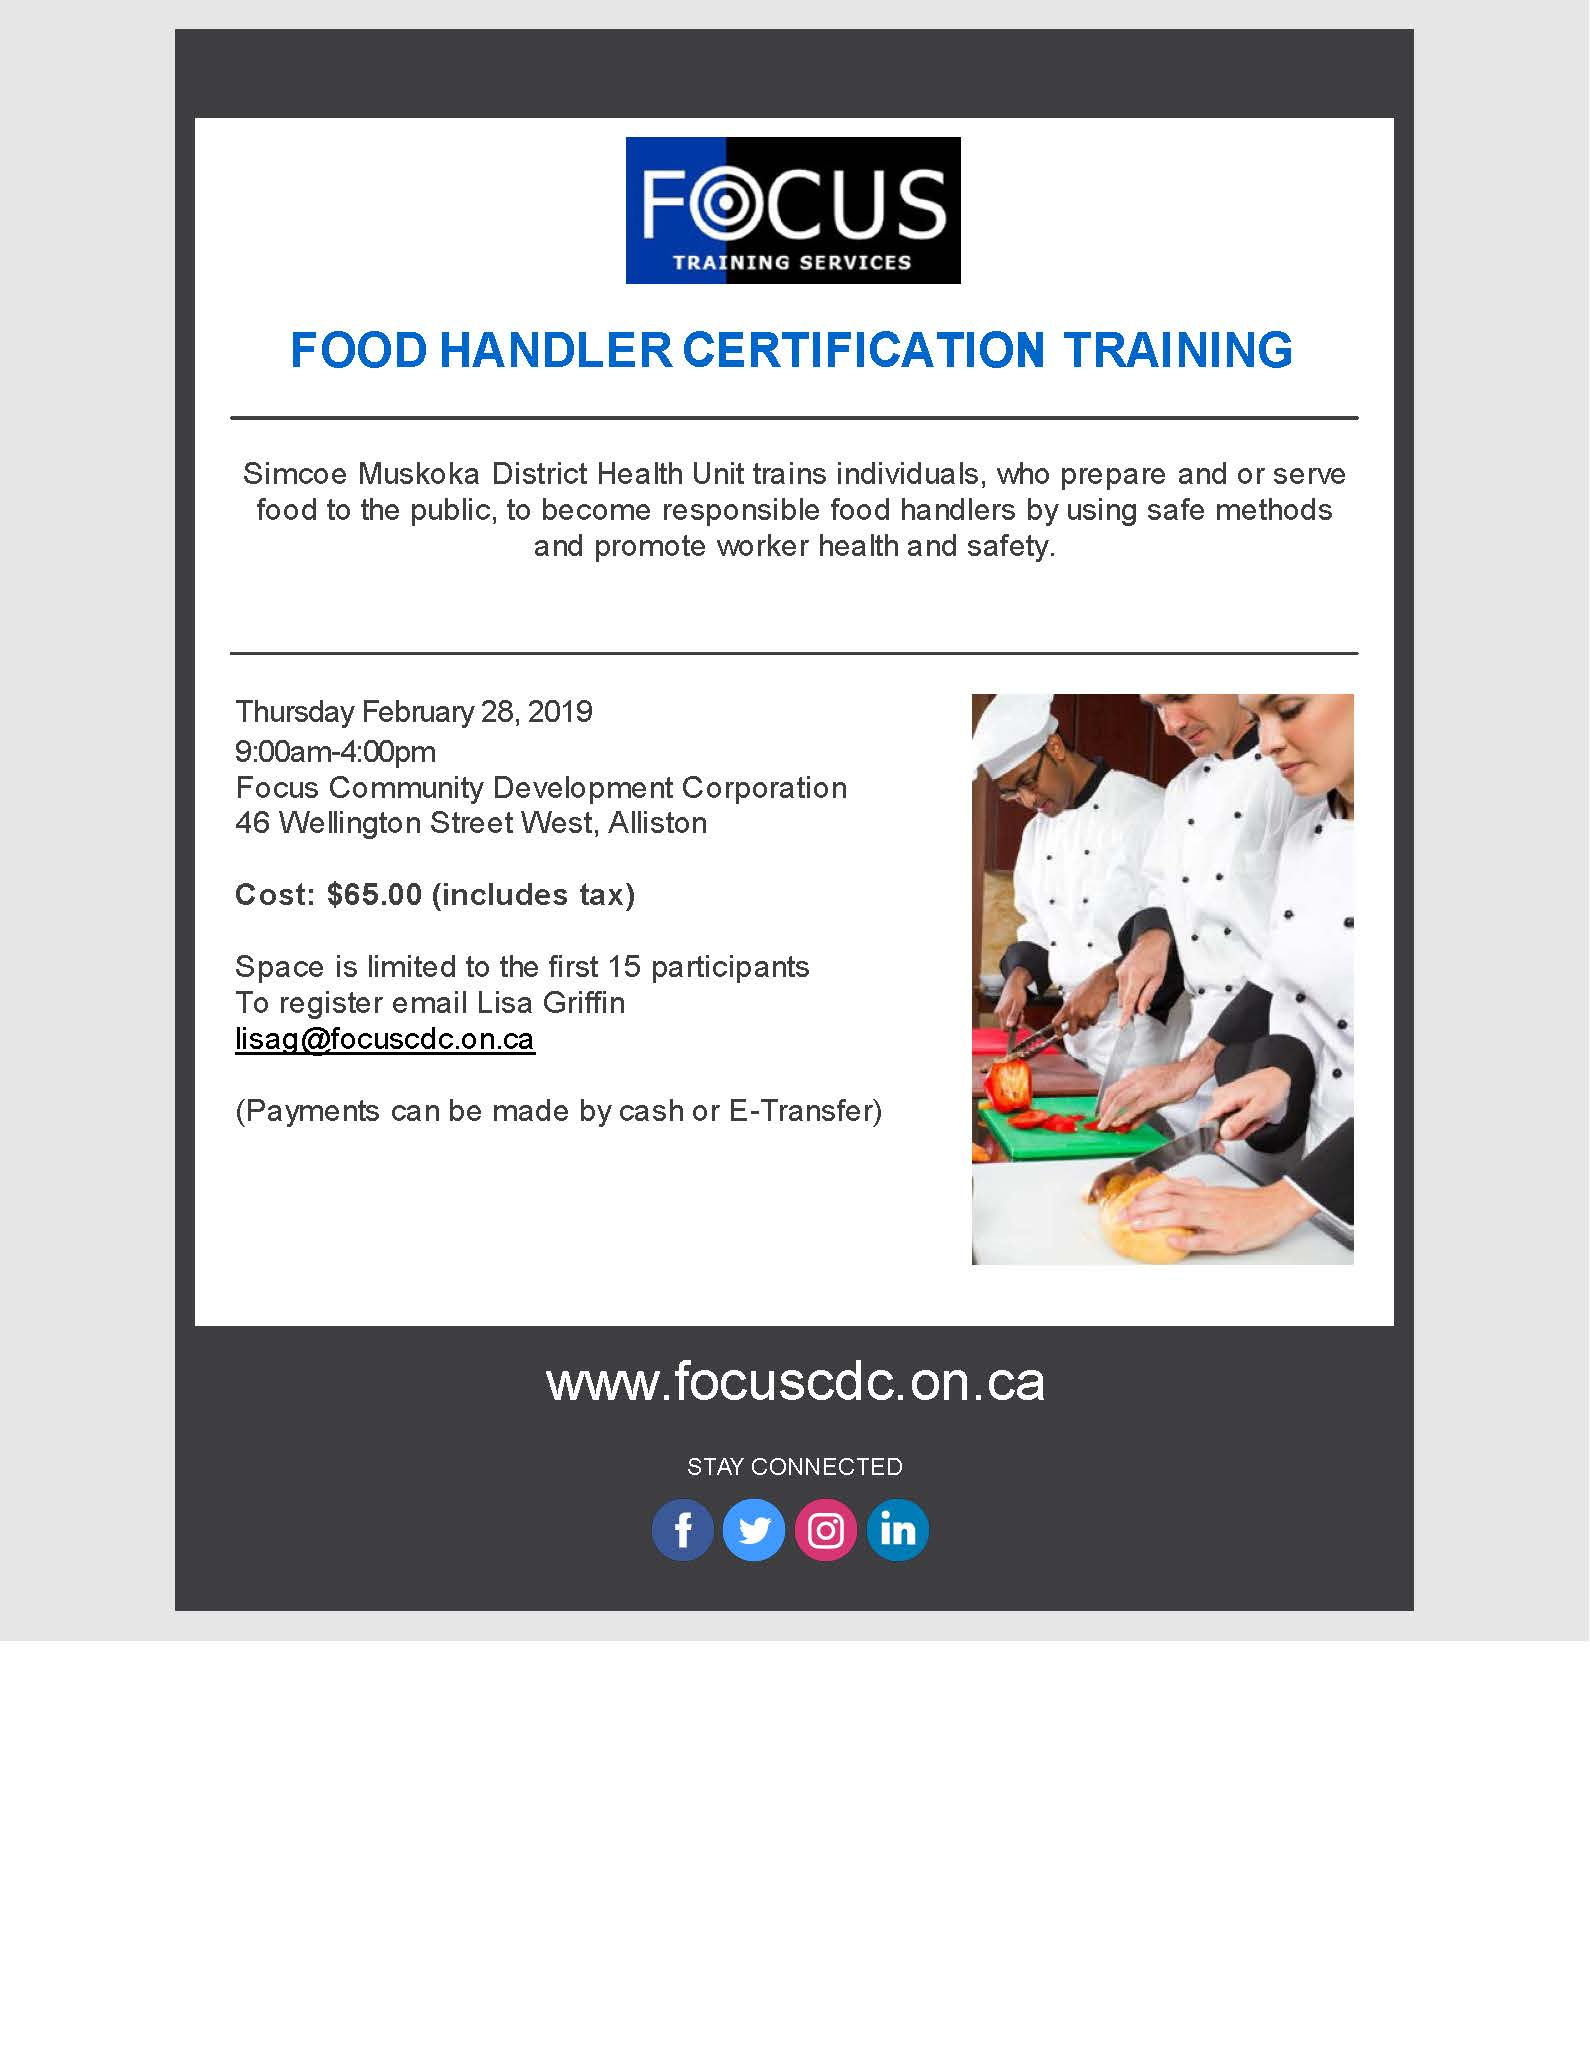 Food Handler Certification Training Feb 28th Focus Community